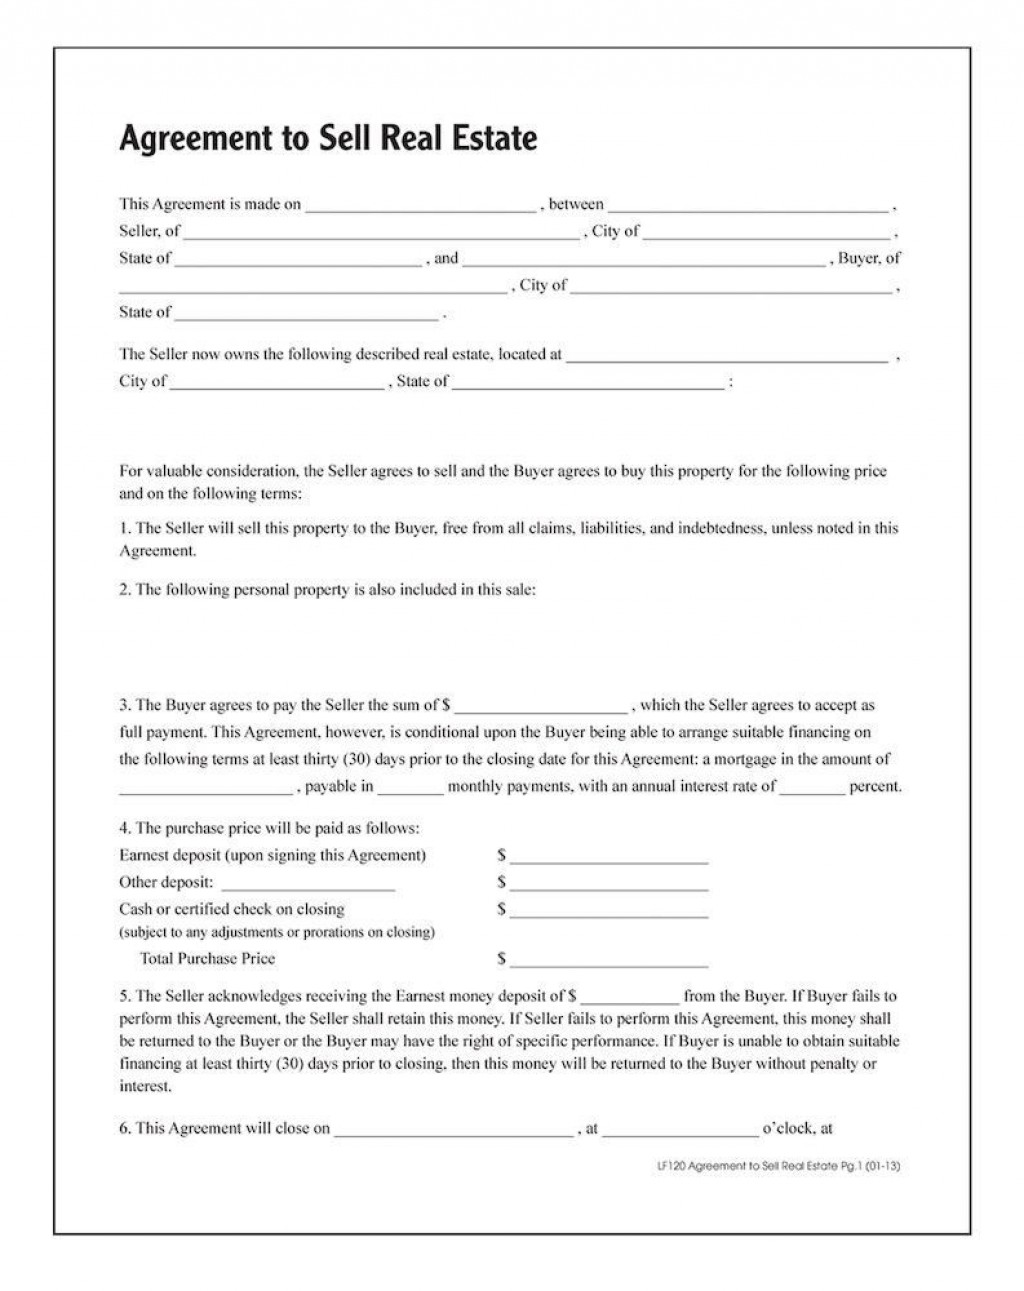 006 Stunning Real Estate Purchase Agreement Template High Definition  Contract California Minnesota British ColumbiaLarge